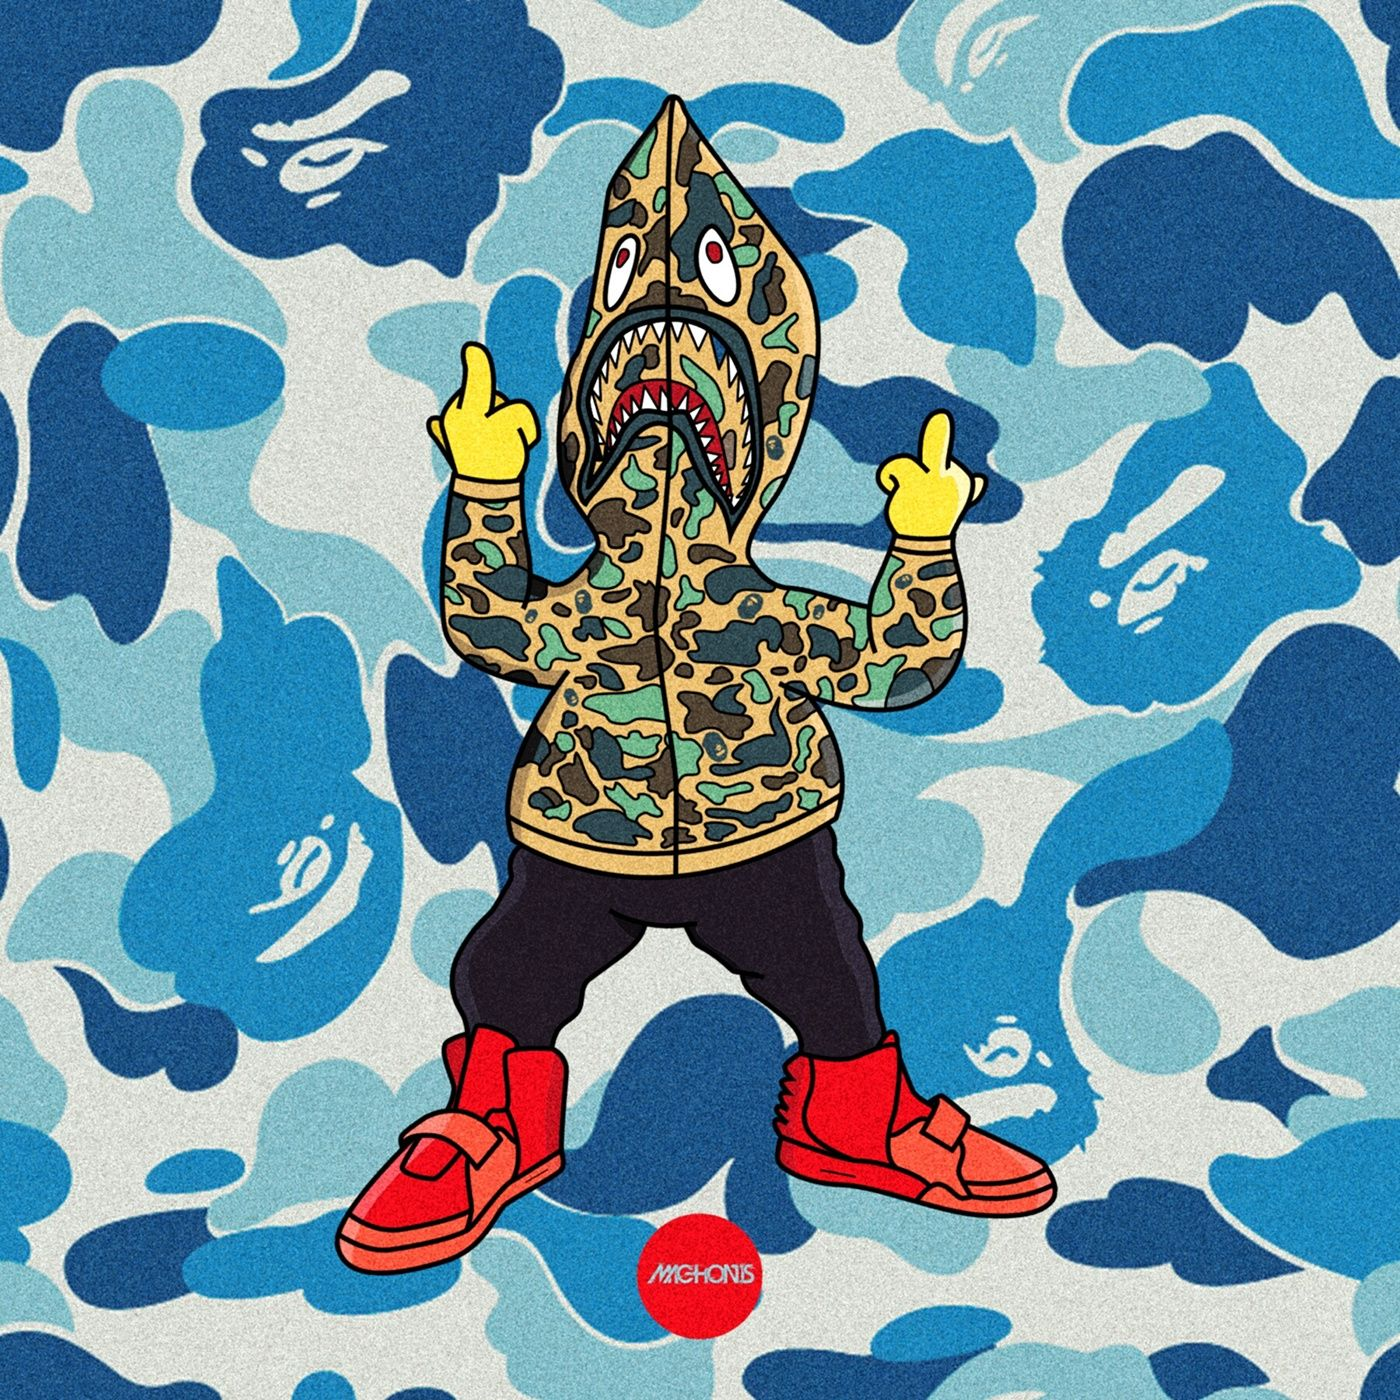 Pin by aka.brodie on Bart simpsons Bape wallpapers